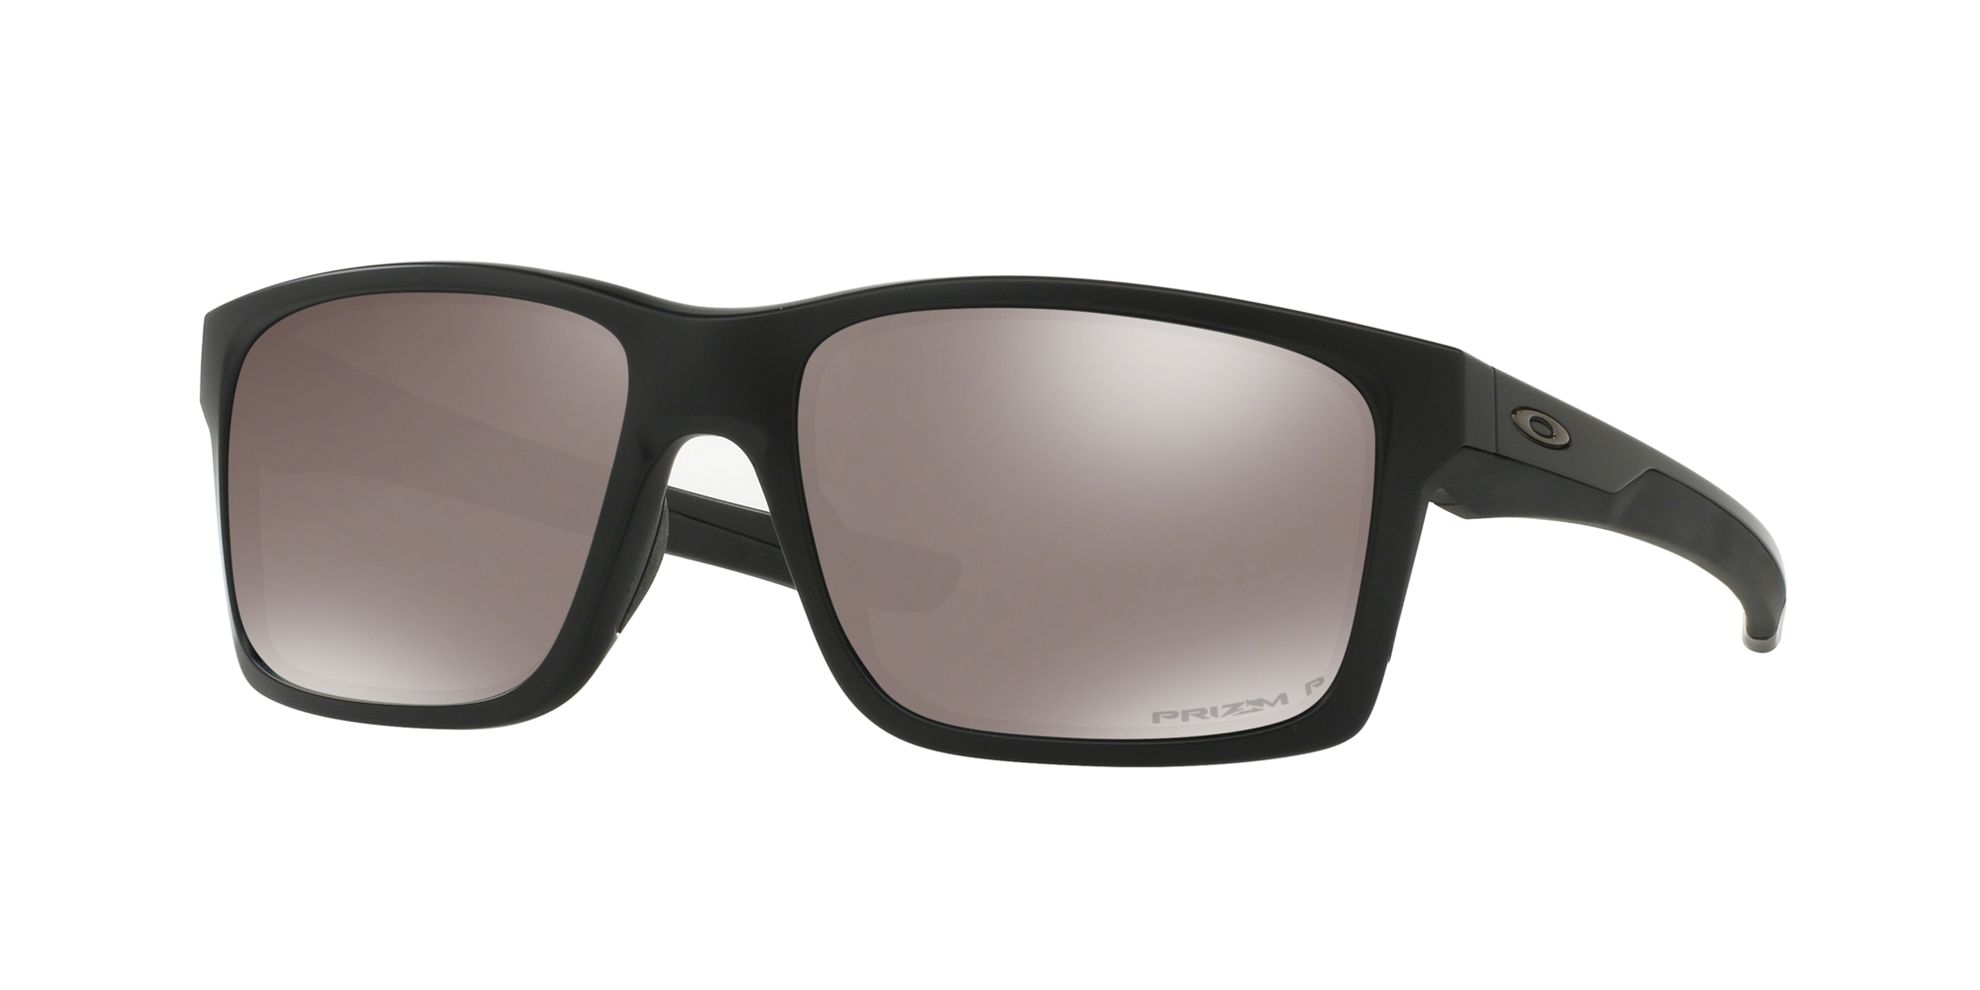 93c0bd3d6f Vision In Style - Choose from various designer sunglasses ...